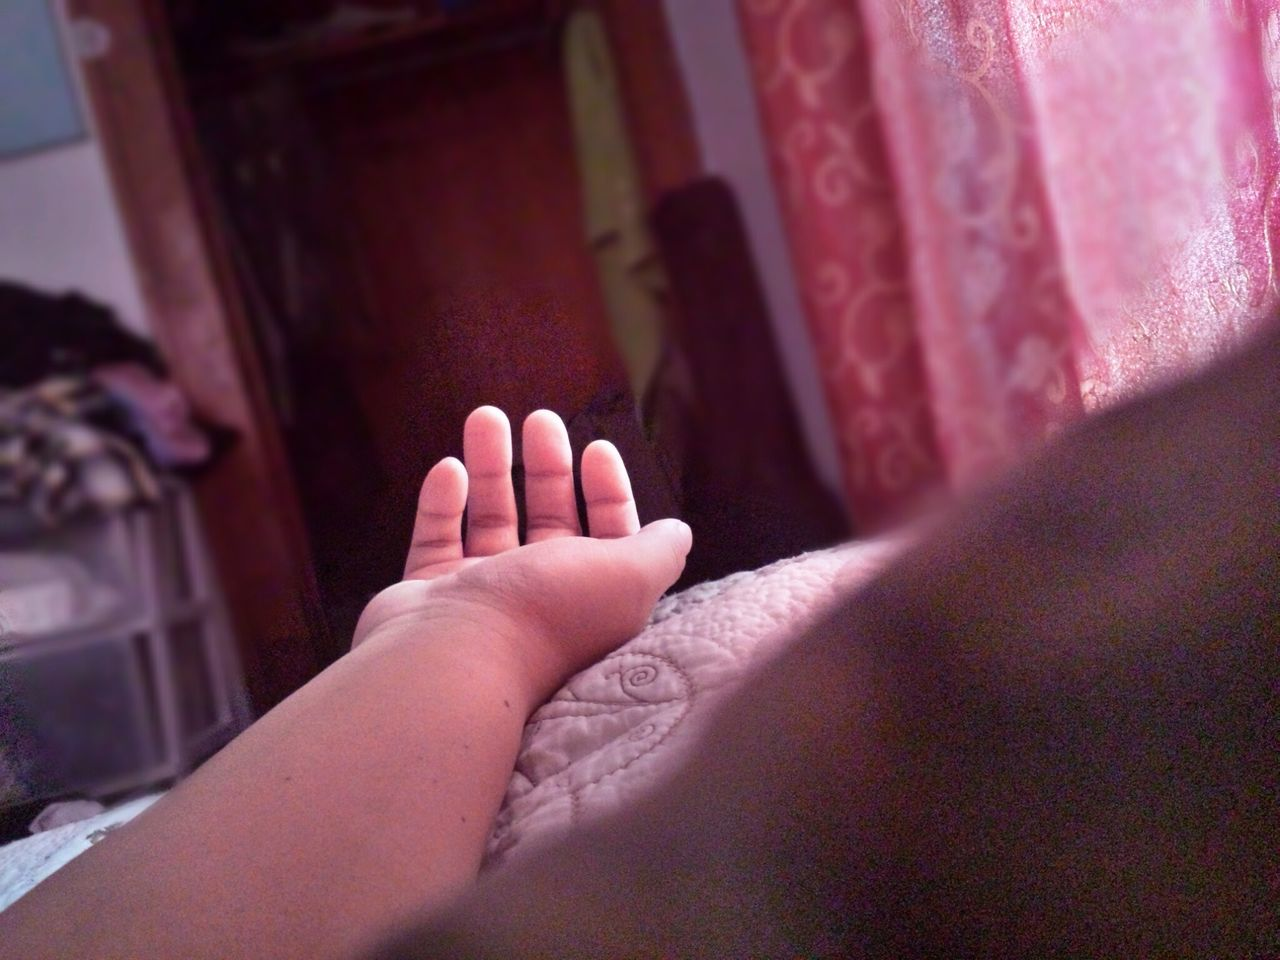 indoors, human body part, close-up, one person, childhood, human hand, day, people